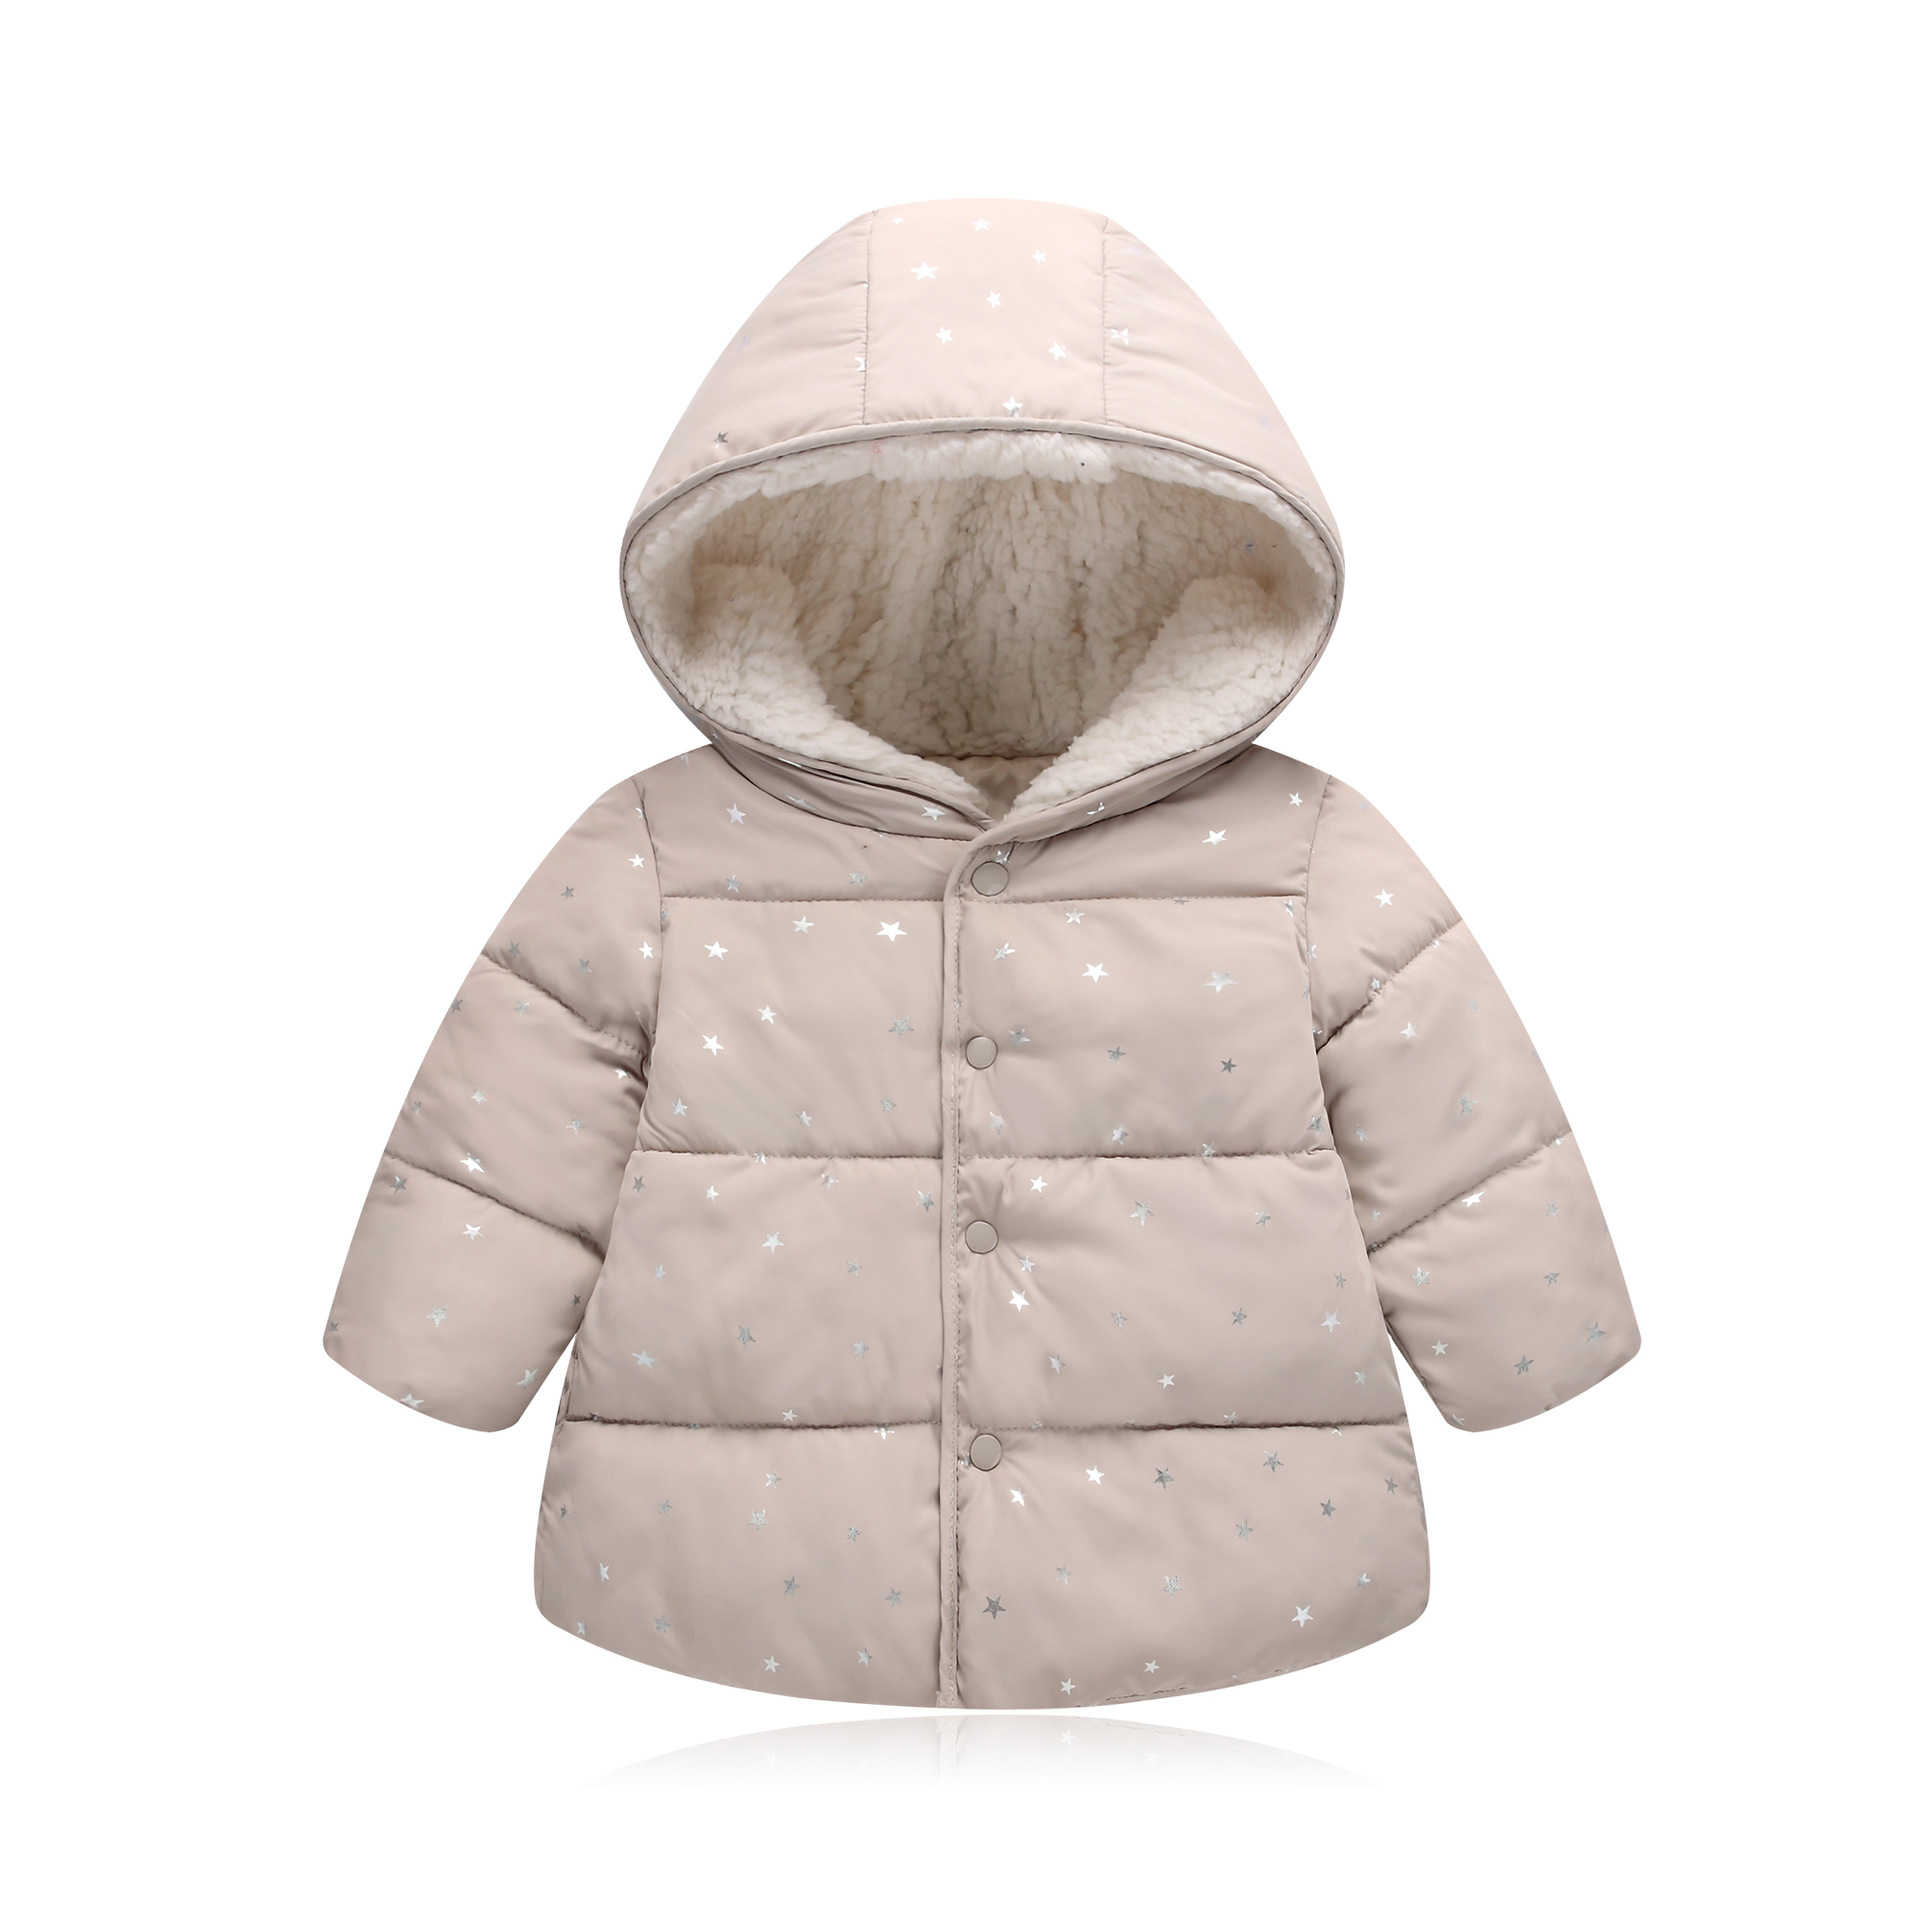 Baby Girls Winter Jackets Fur Hooded Cotton-padded Short Coat for Little Girl age 1 2 3 4 5 years old Autumn Children Outwear free shipping children s scooter user age 2 5 years old 3 wheels blue pink